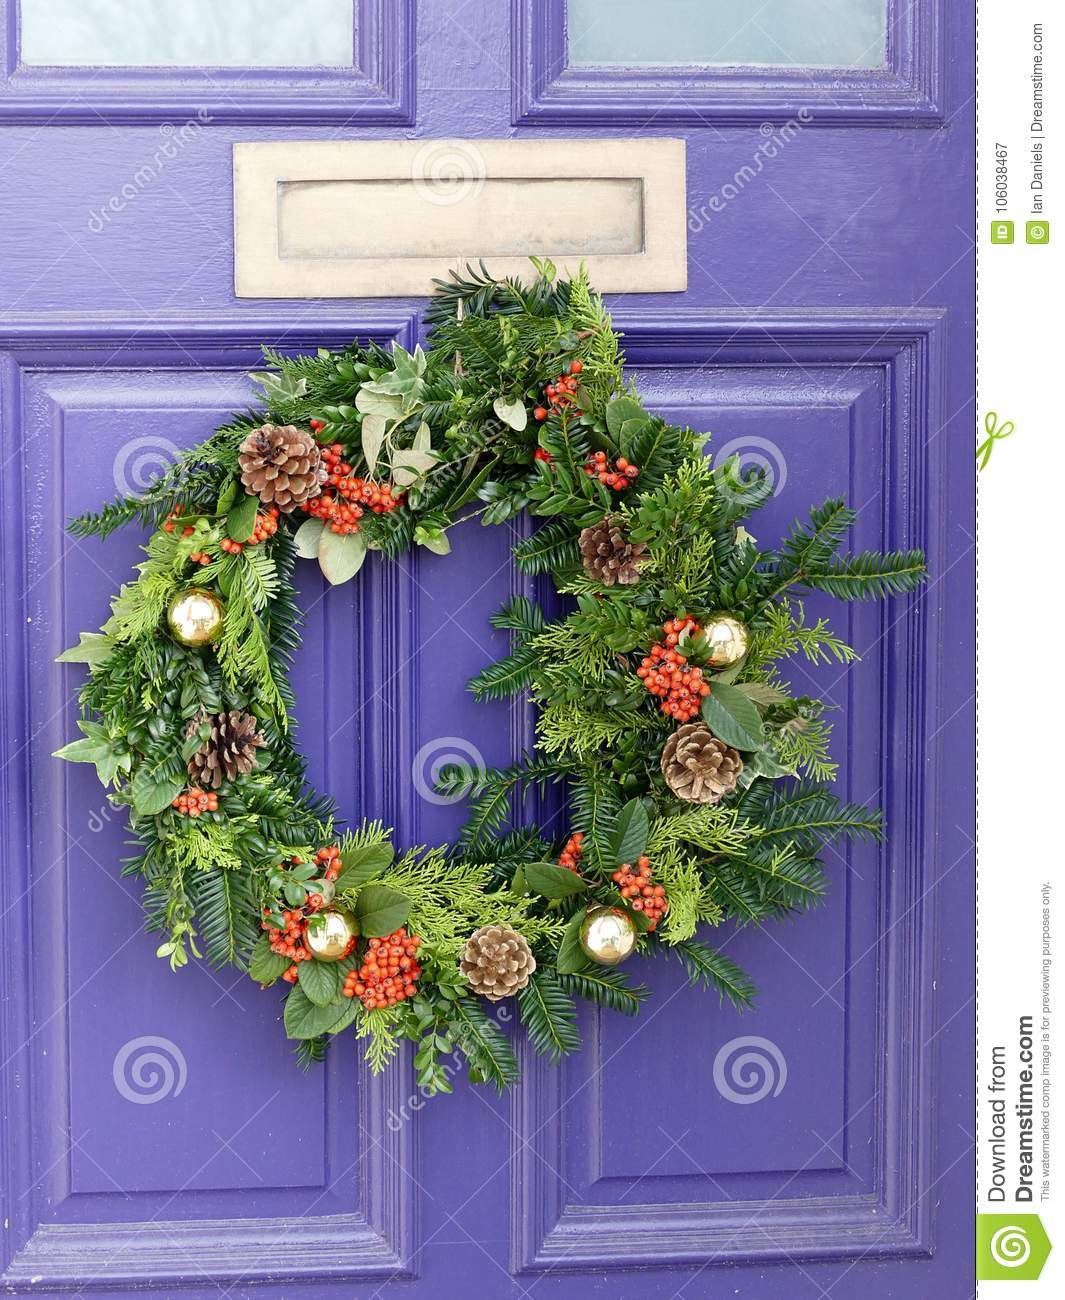 Colourful Wreath On A Purple Door Stock Image Image Of Colorful